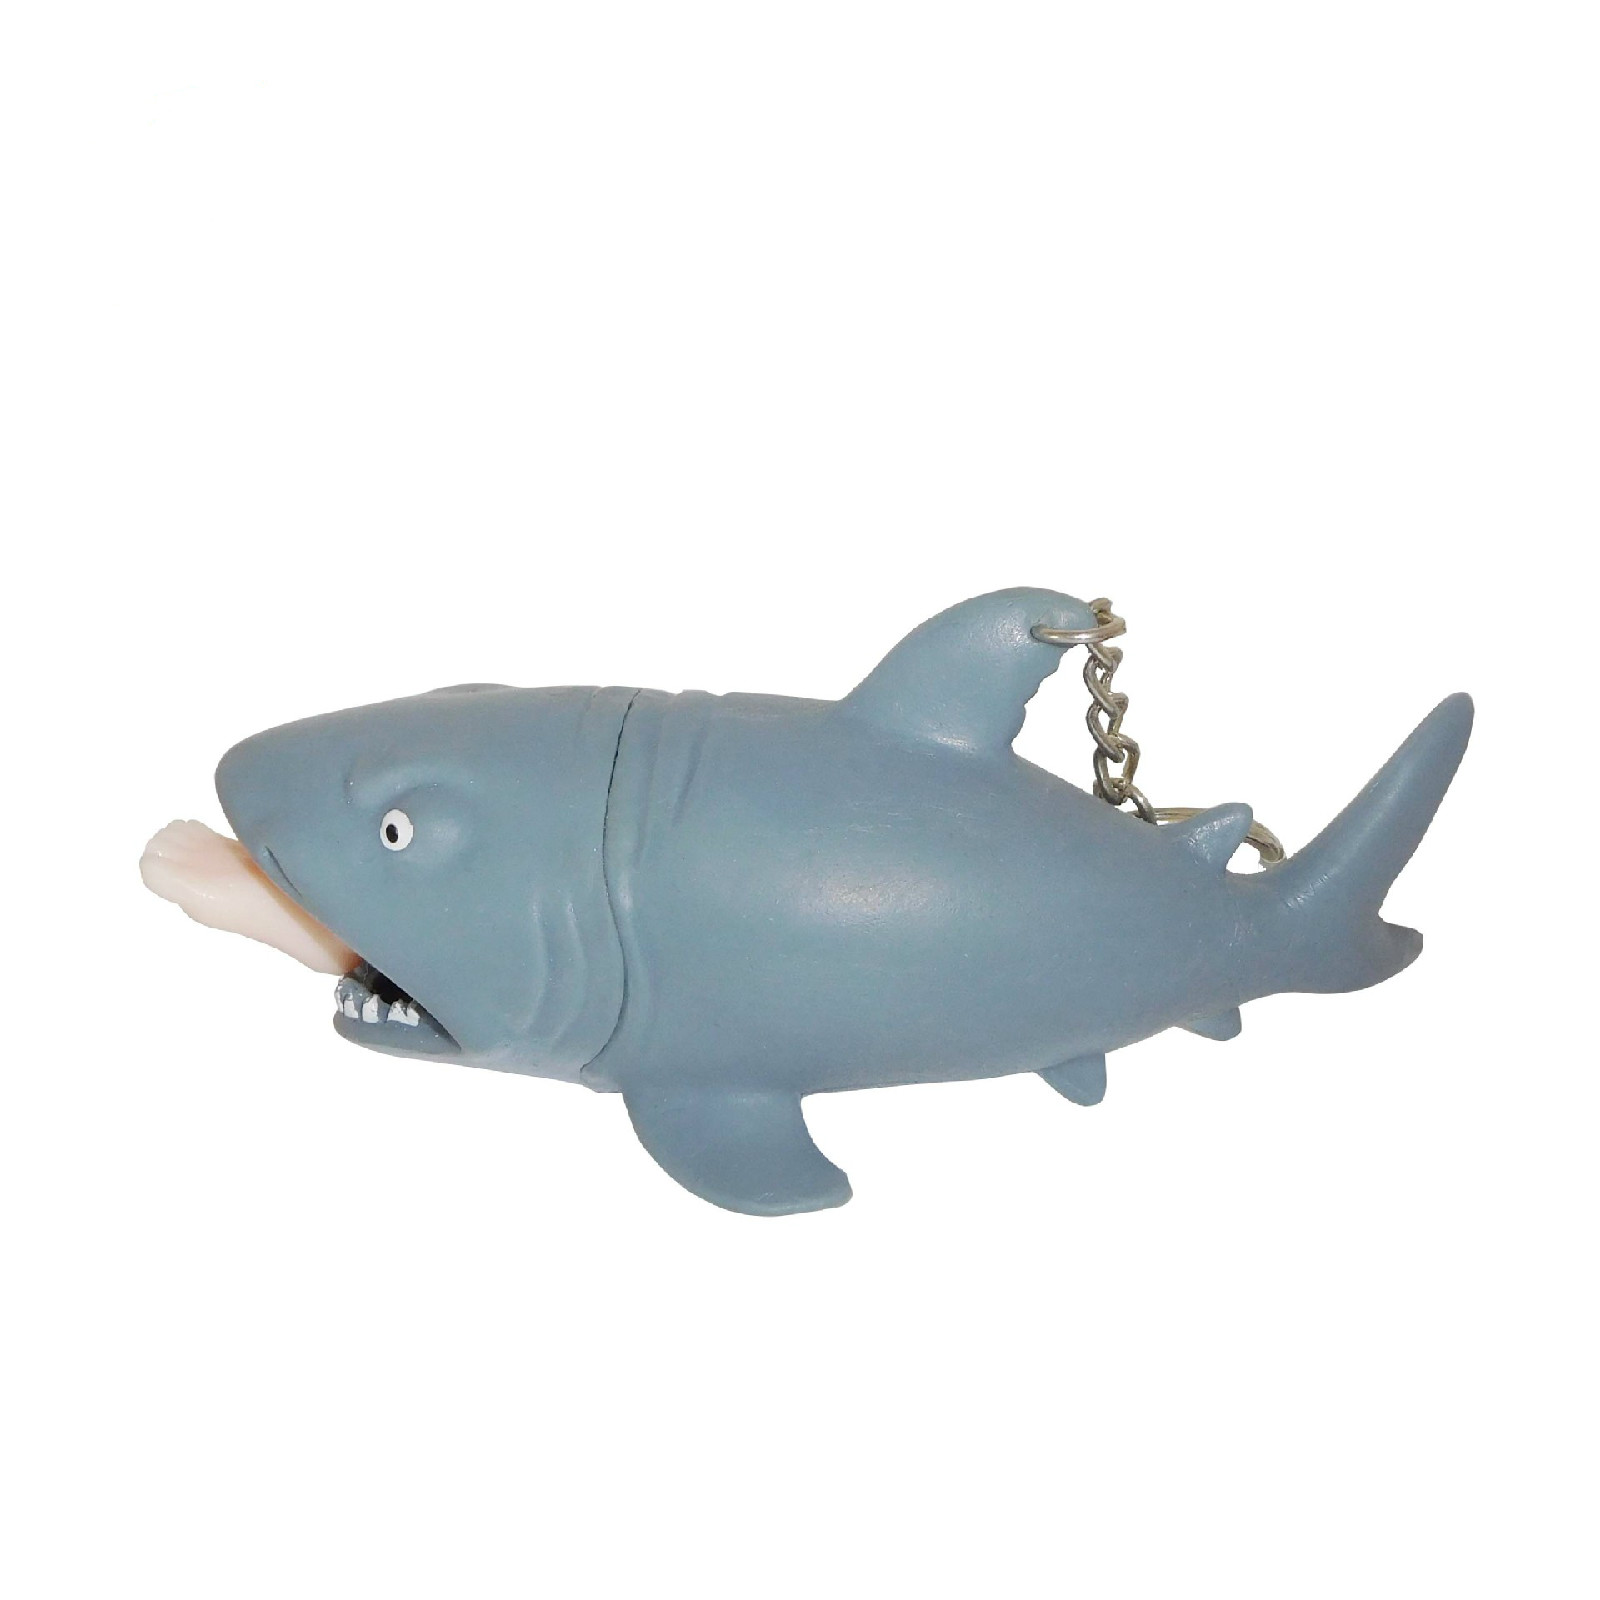 Soft Anti Stress Antistress Squishy Anti-Stress Squishi 12cm Funny Toy Shark Squeeze Stress Decompression Toys Squeeze Toy